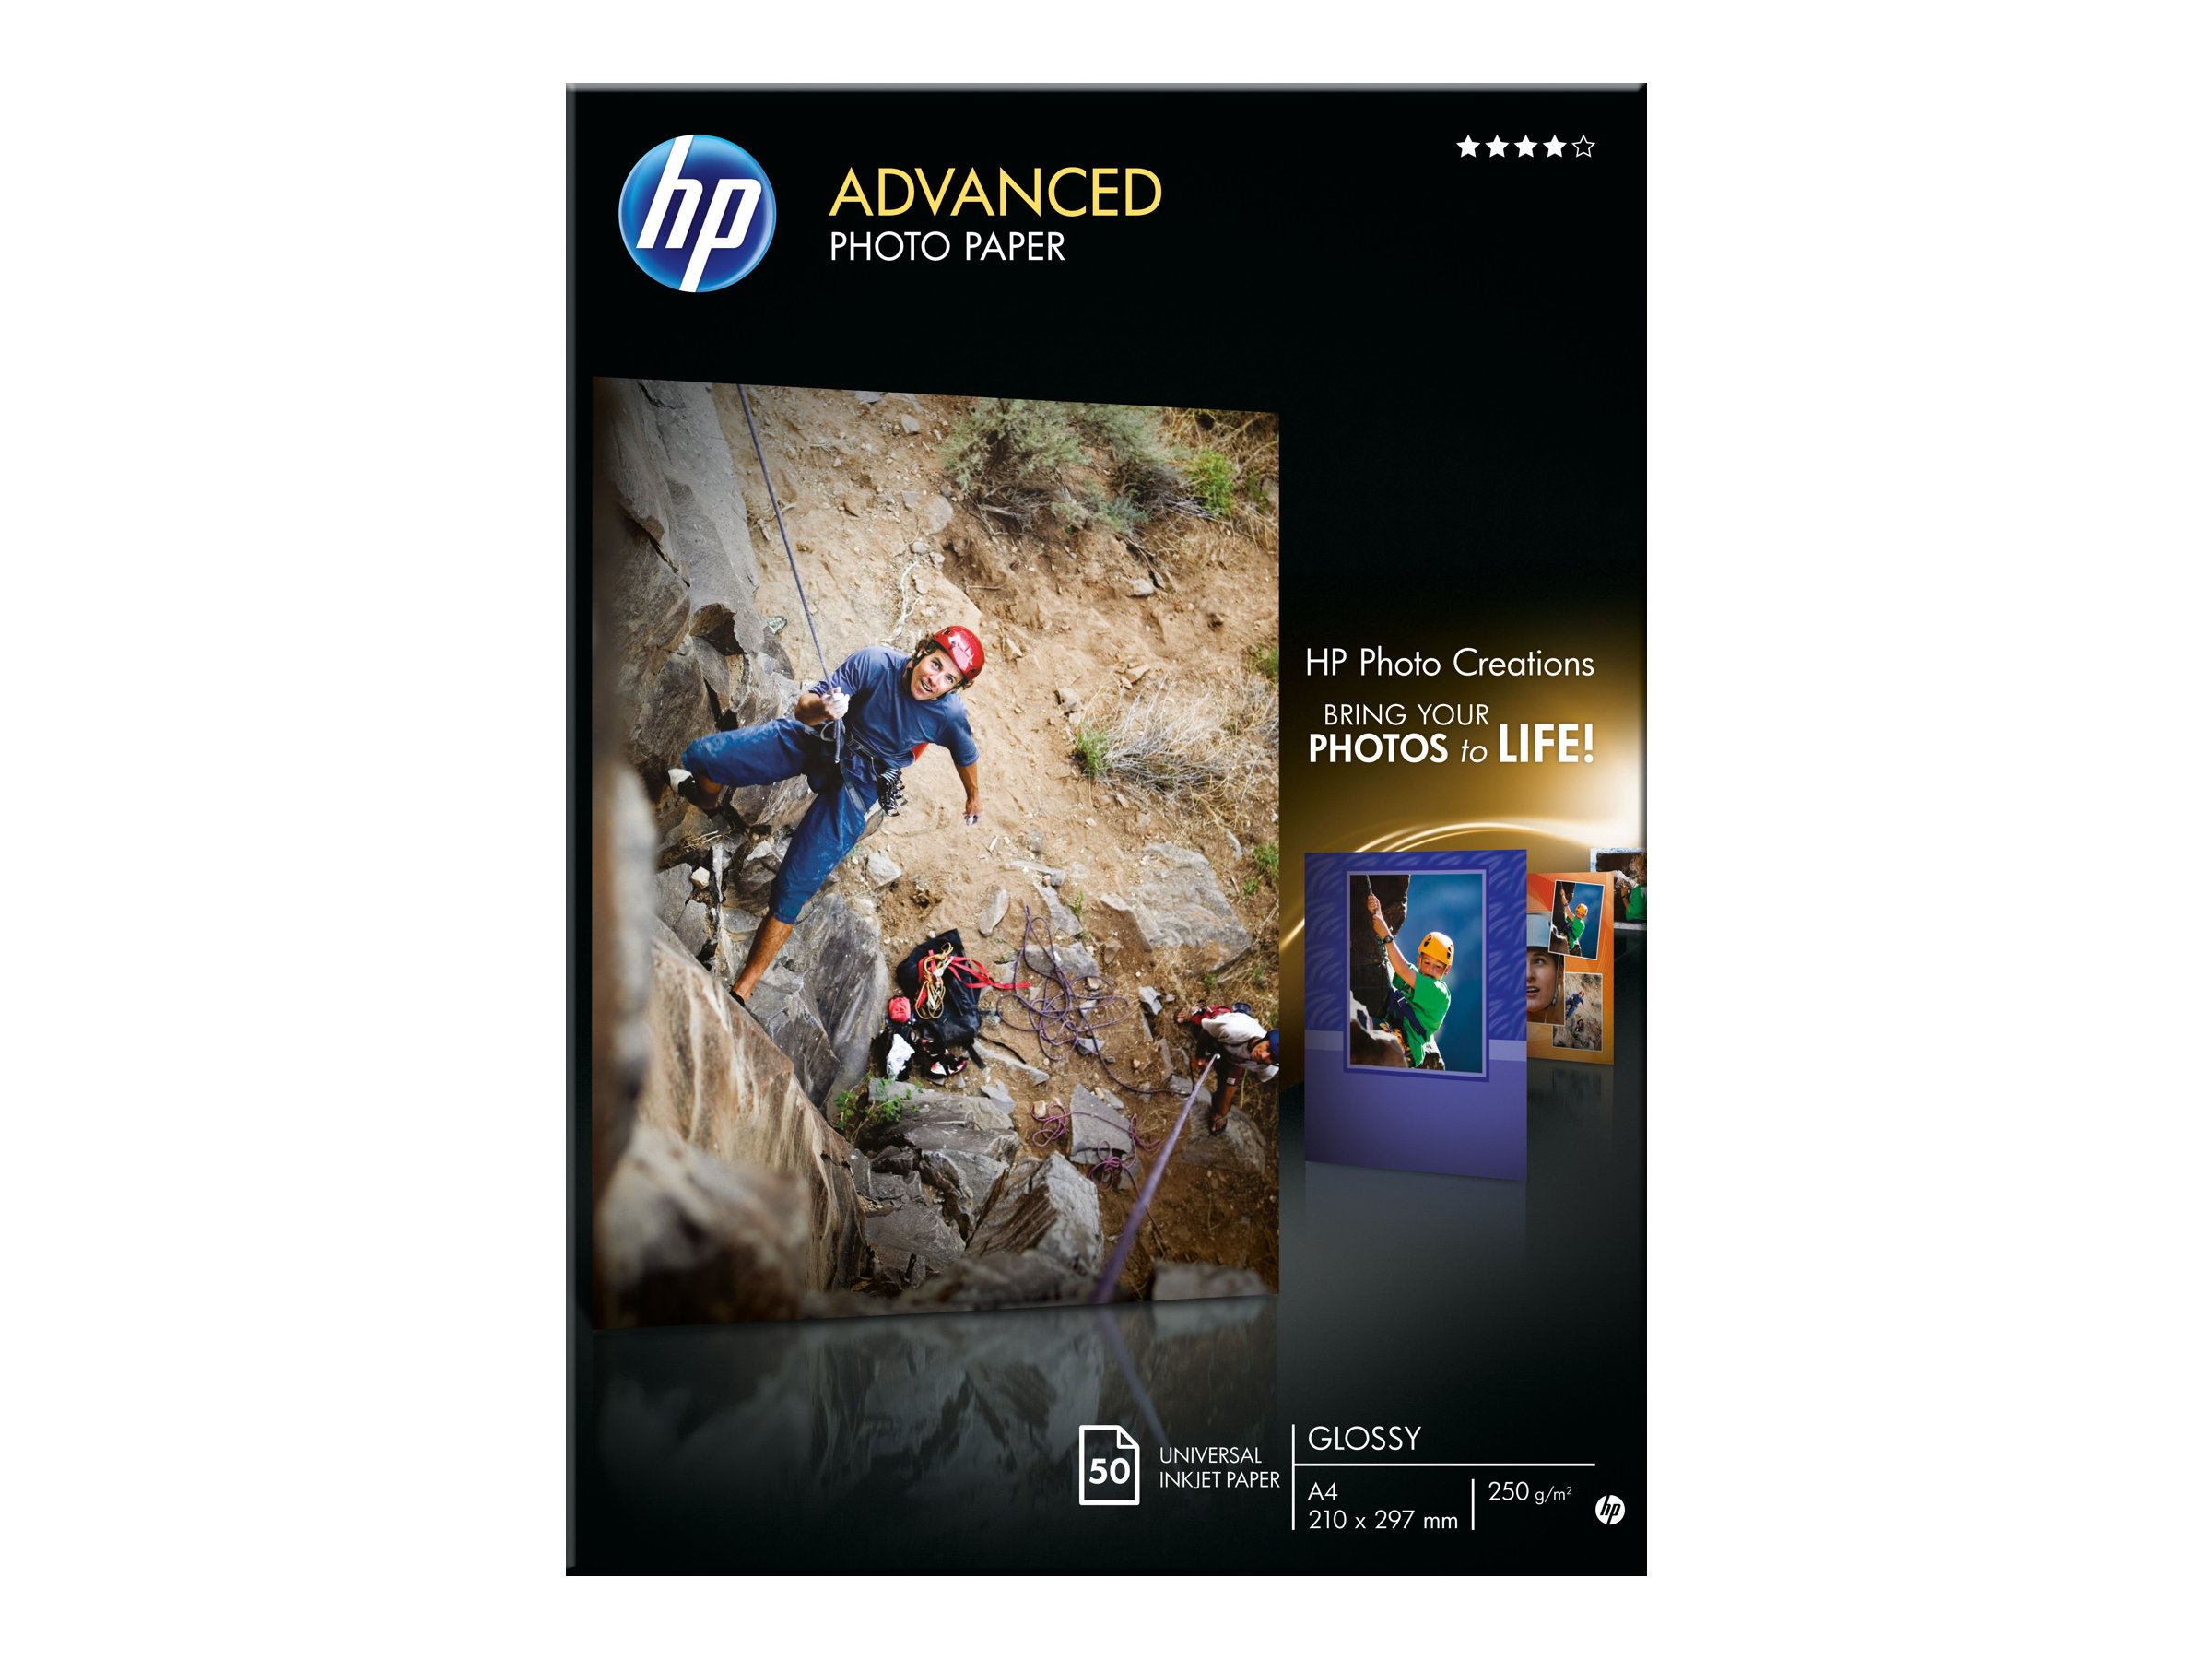 HP Advanced Glossy Photo Paper - Glänzend - A4 (210 x 297 mm) 50 Blatt Fotopapier - für Deskjet 2050 J510; Officejet 6000 E609, 76XX; PageWide MFP 377; PageWide Pro 452